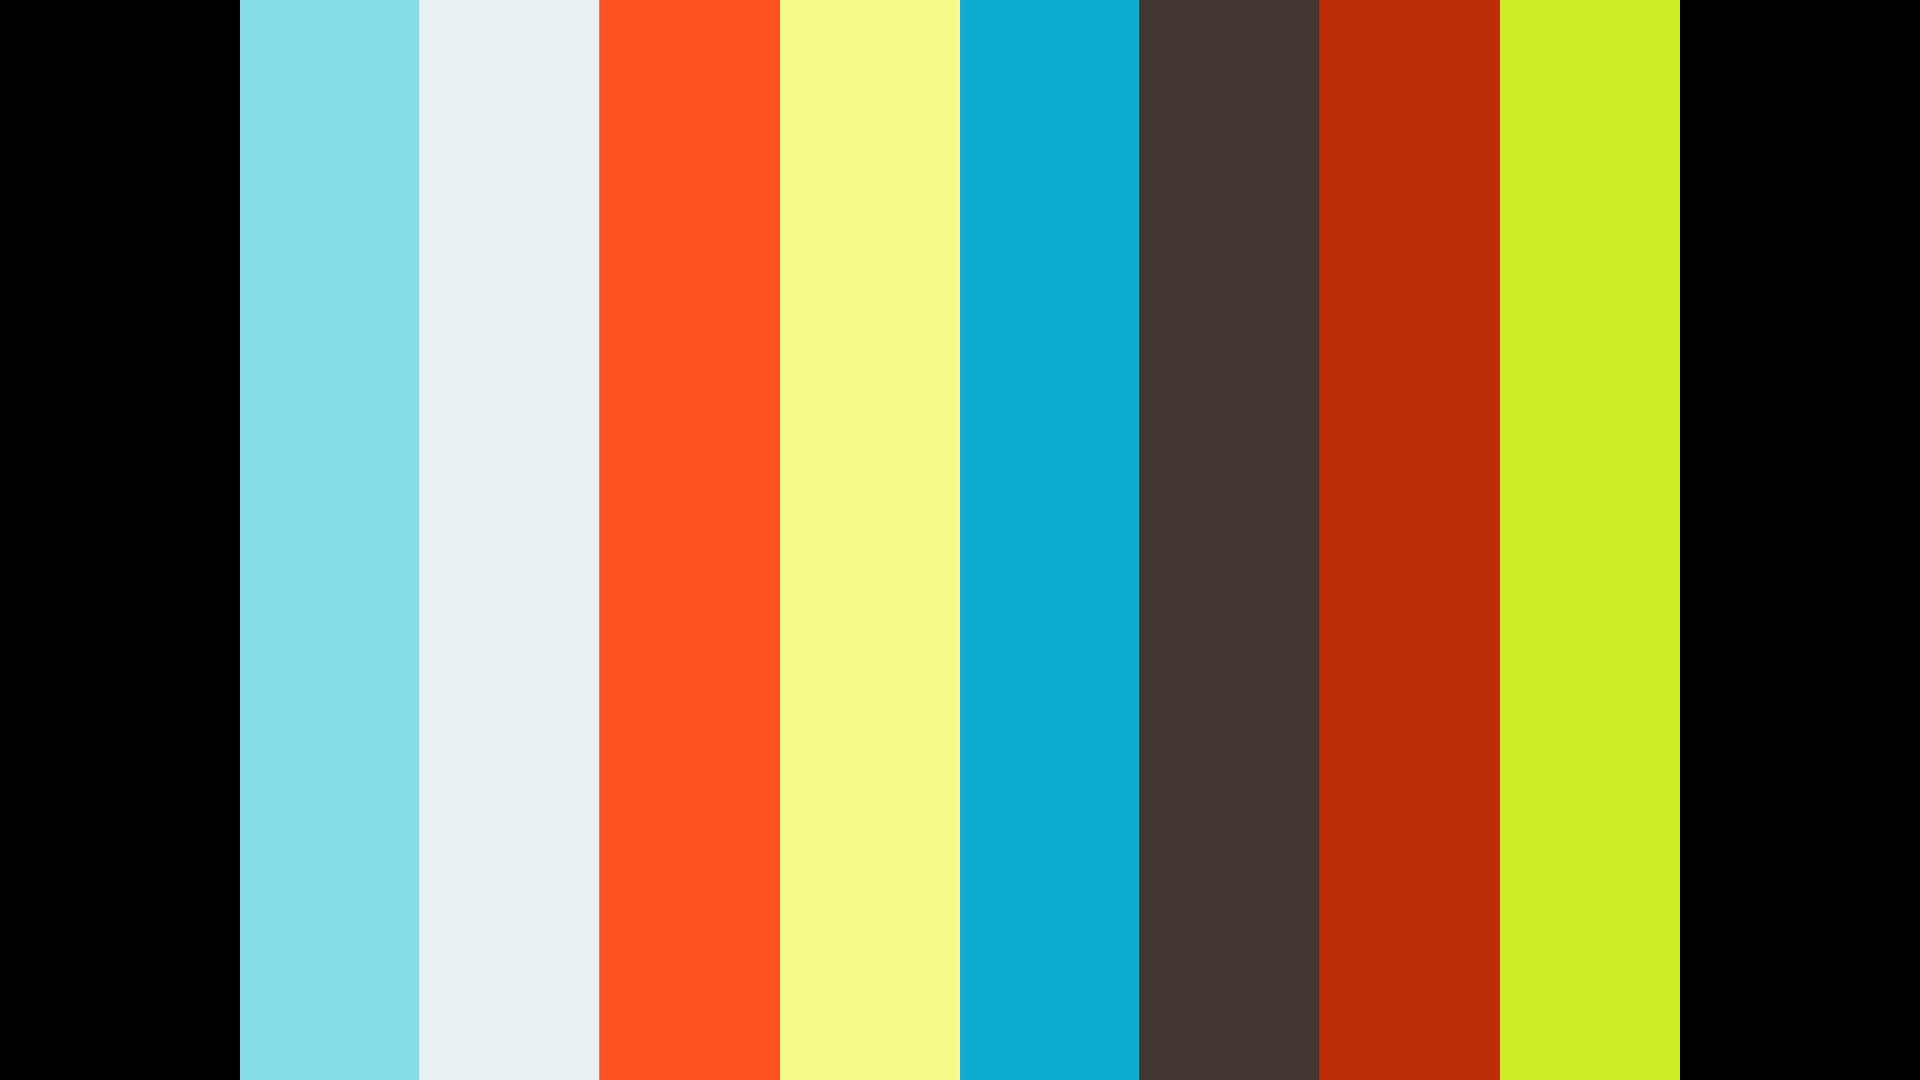 Session 8: The Role of Explicit Agreement and Visible Union in Revival